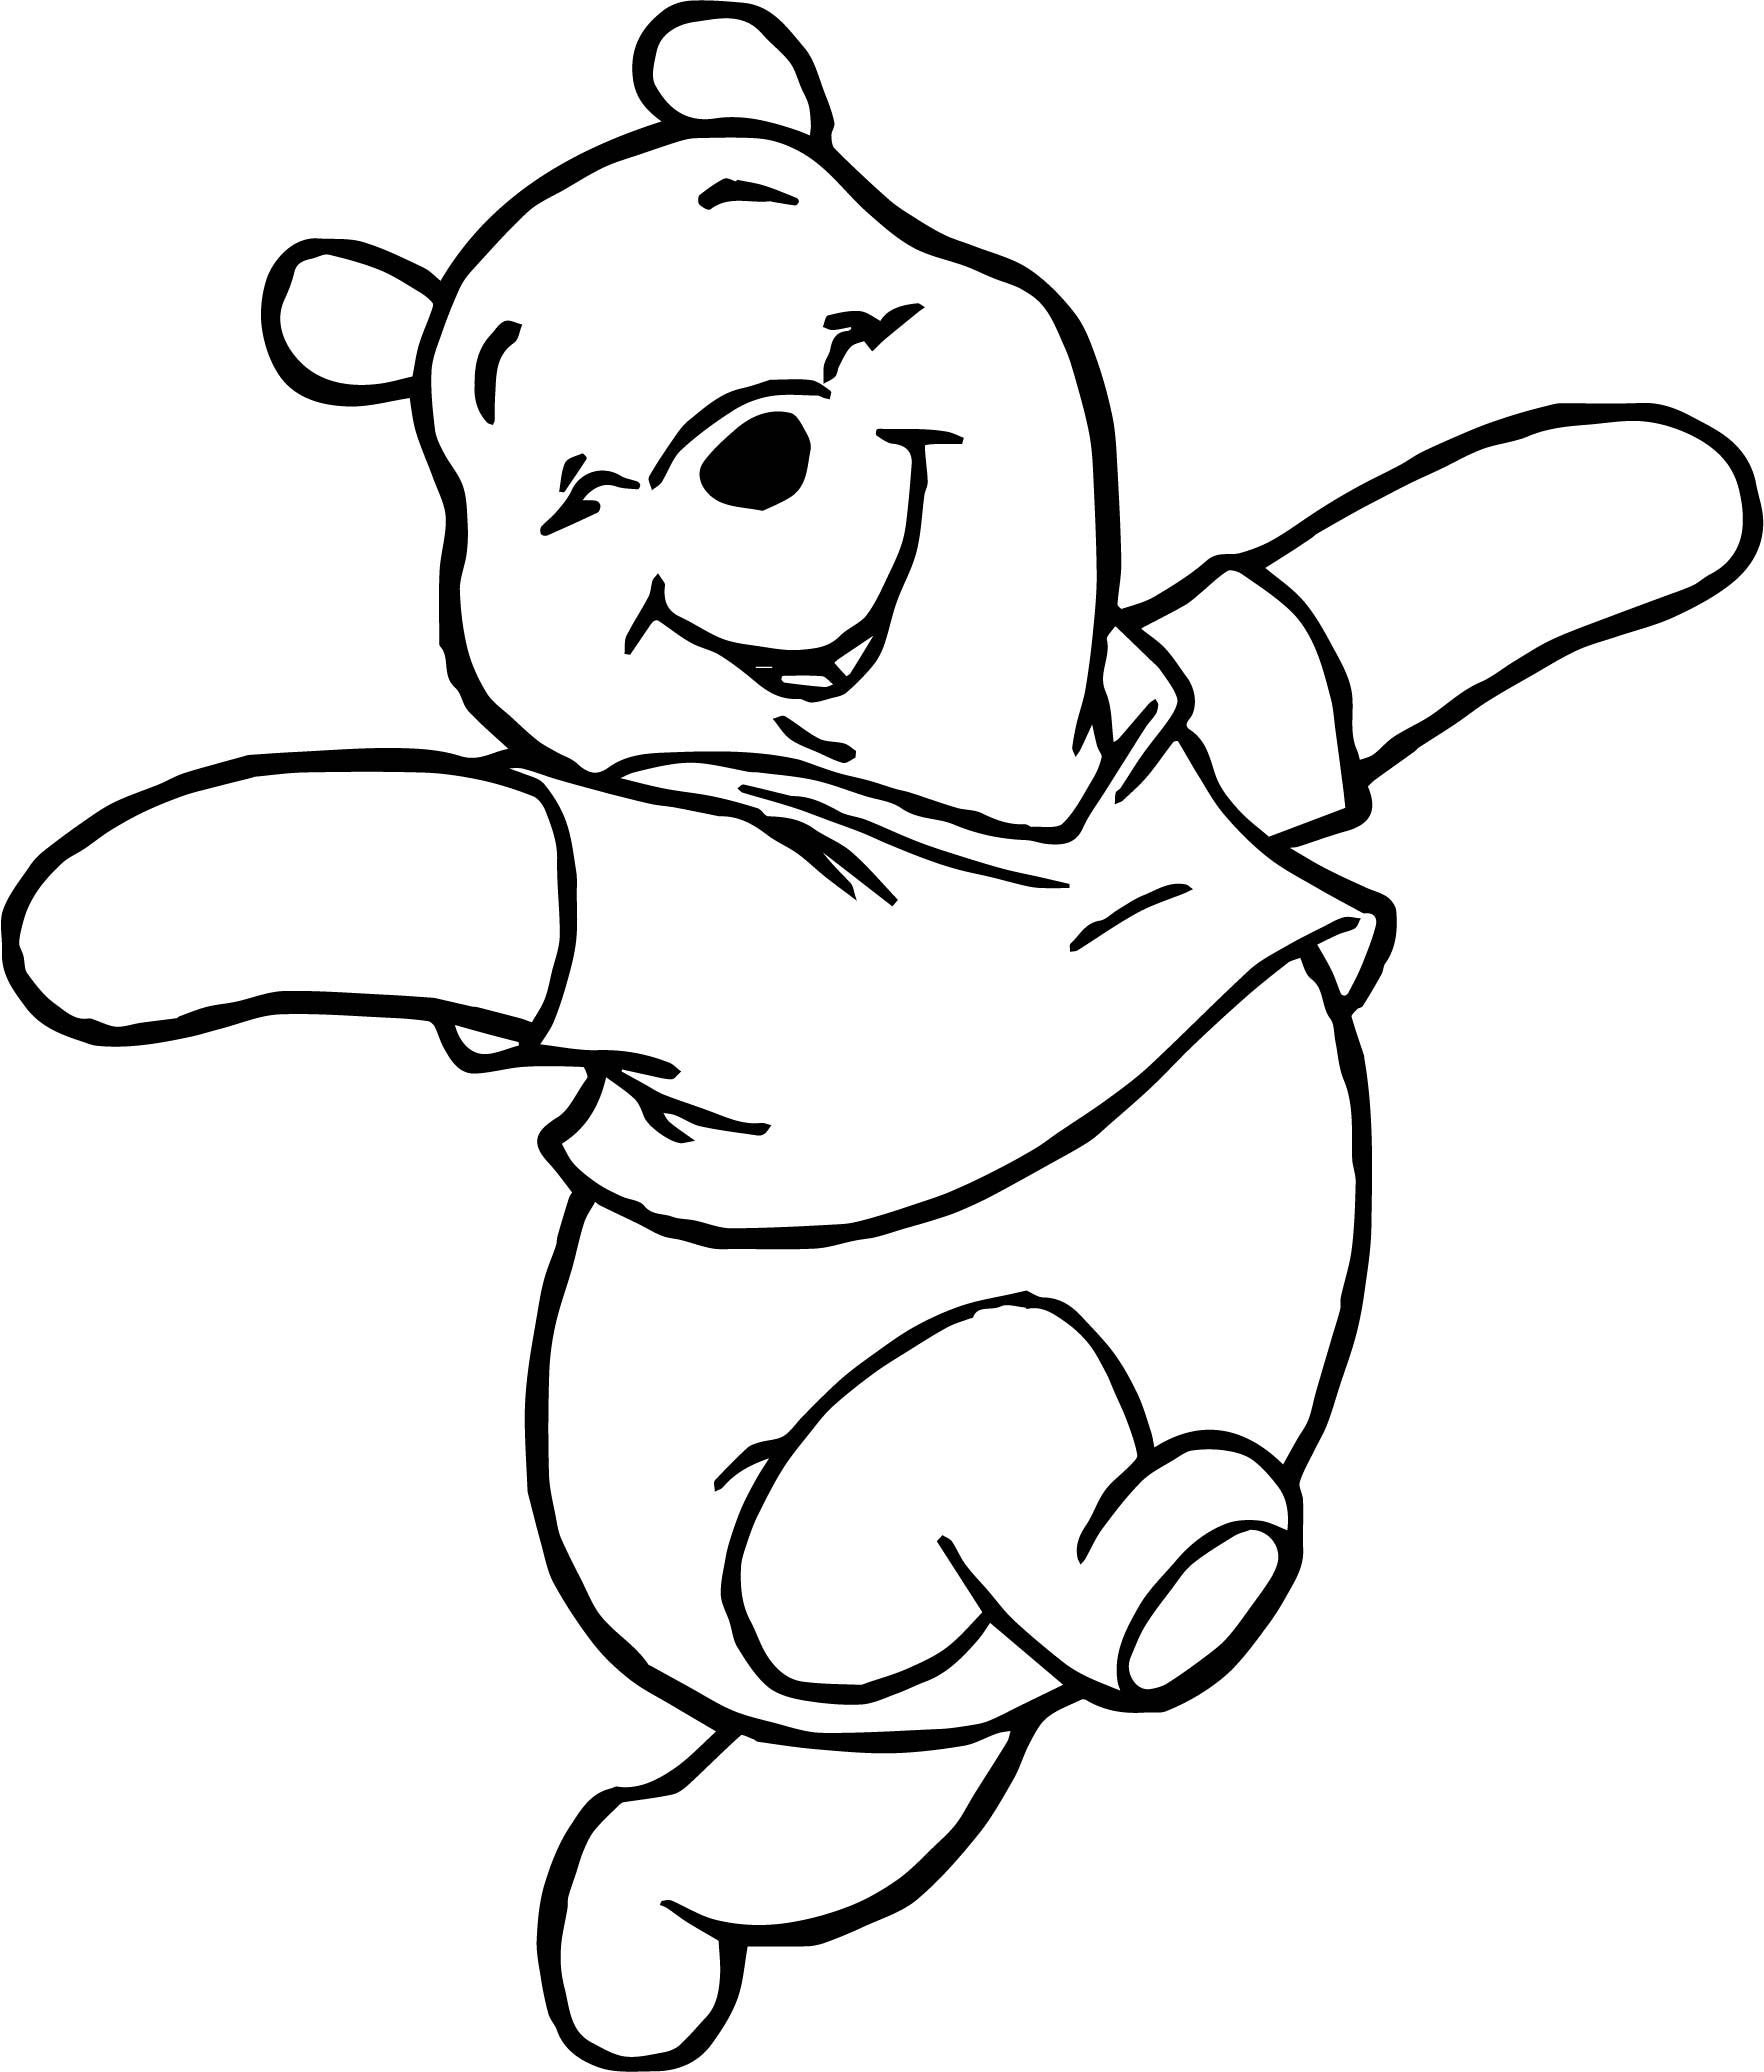 winnie the pooh happy walking coloring page wecoloringpage